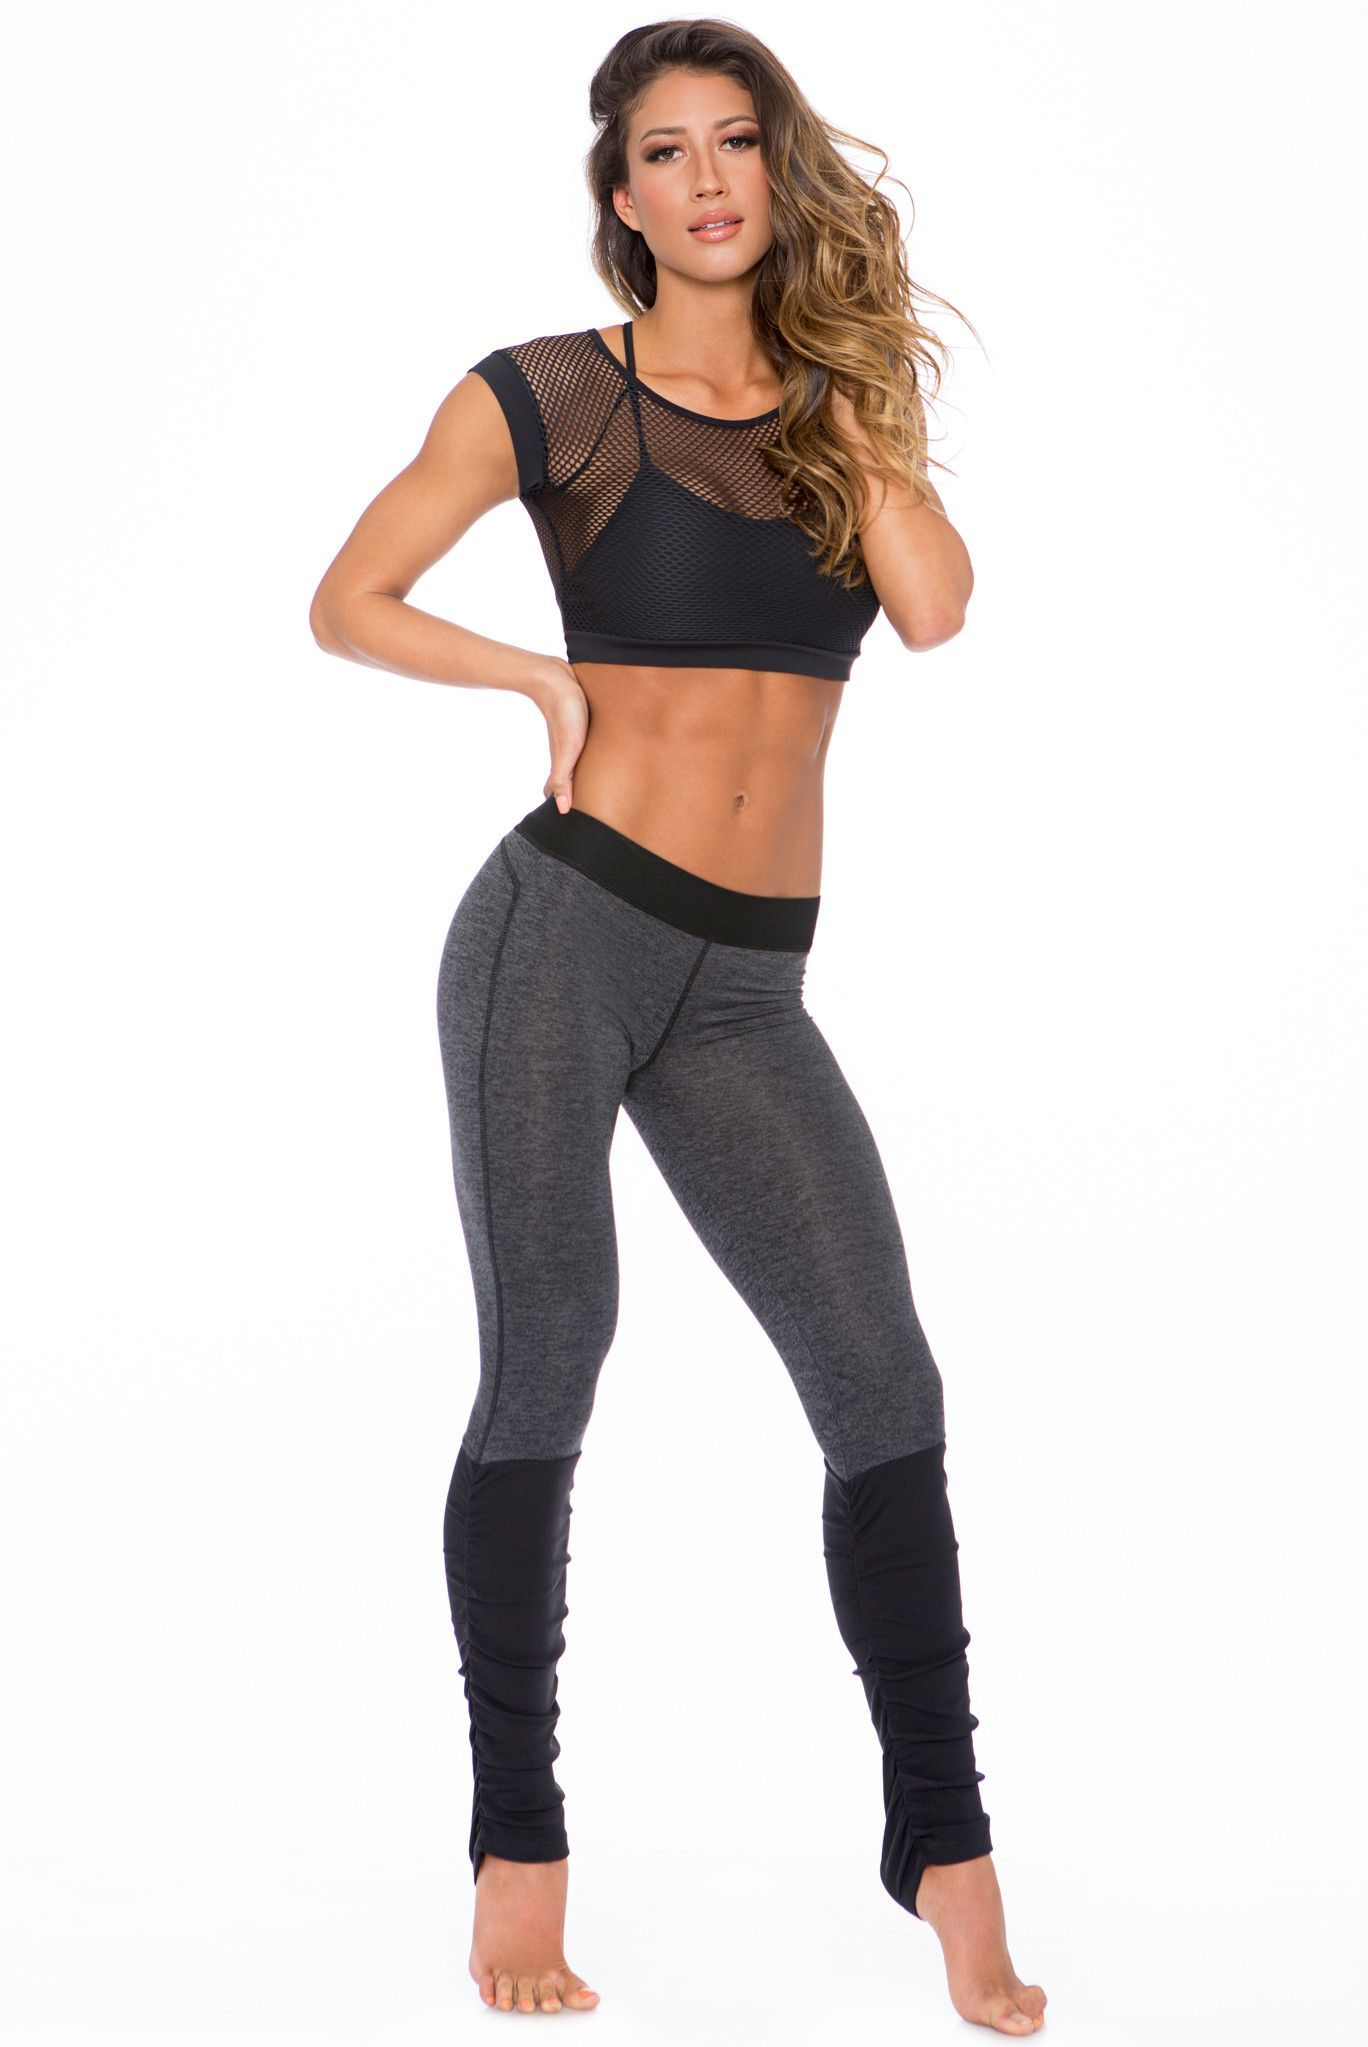 149e8eccc6f69 Bombshell Sportswear has launched designer sportswear bottoms to make your  workouts more comfortable and stylish.